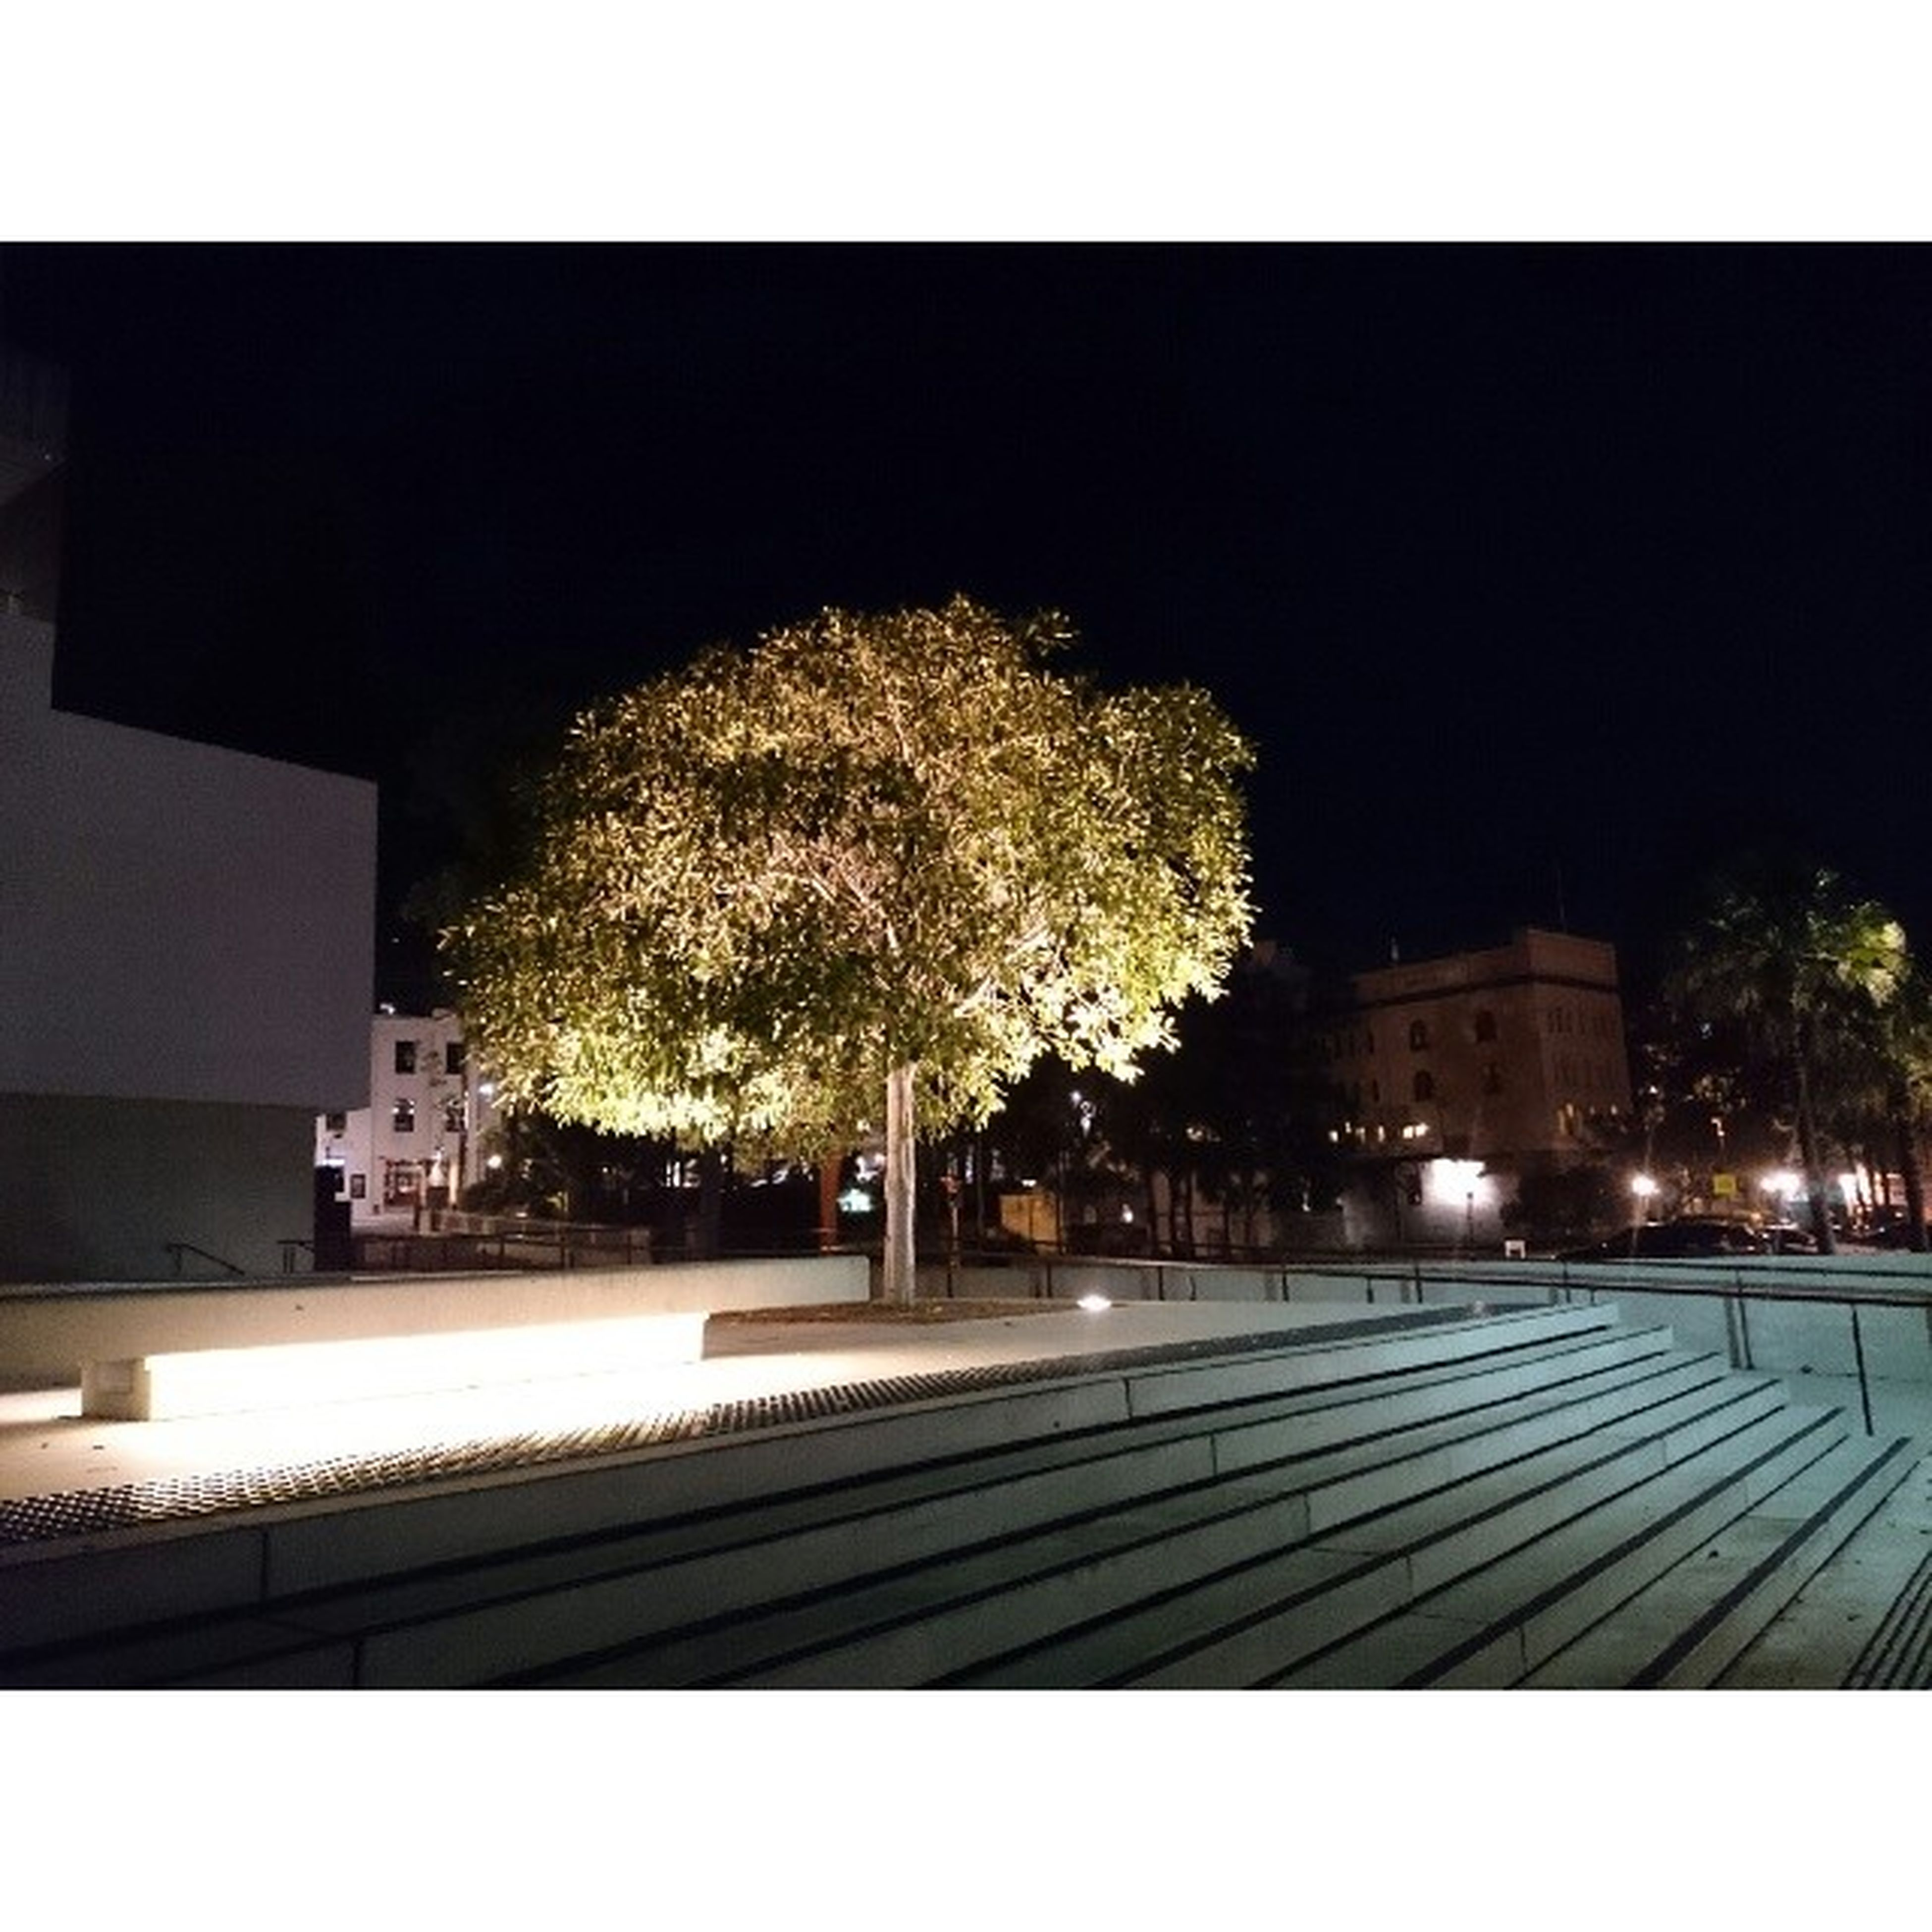 night, tree, illuminated, transfer print, architecture, built structure, auto post production filter, building exterior, transportation, road, street light, clear sky, sky, outdoors, city, no people, growth, lighting equipment, street, the way forward